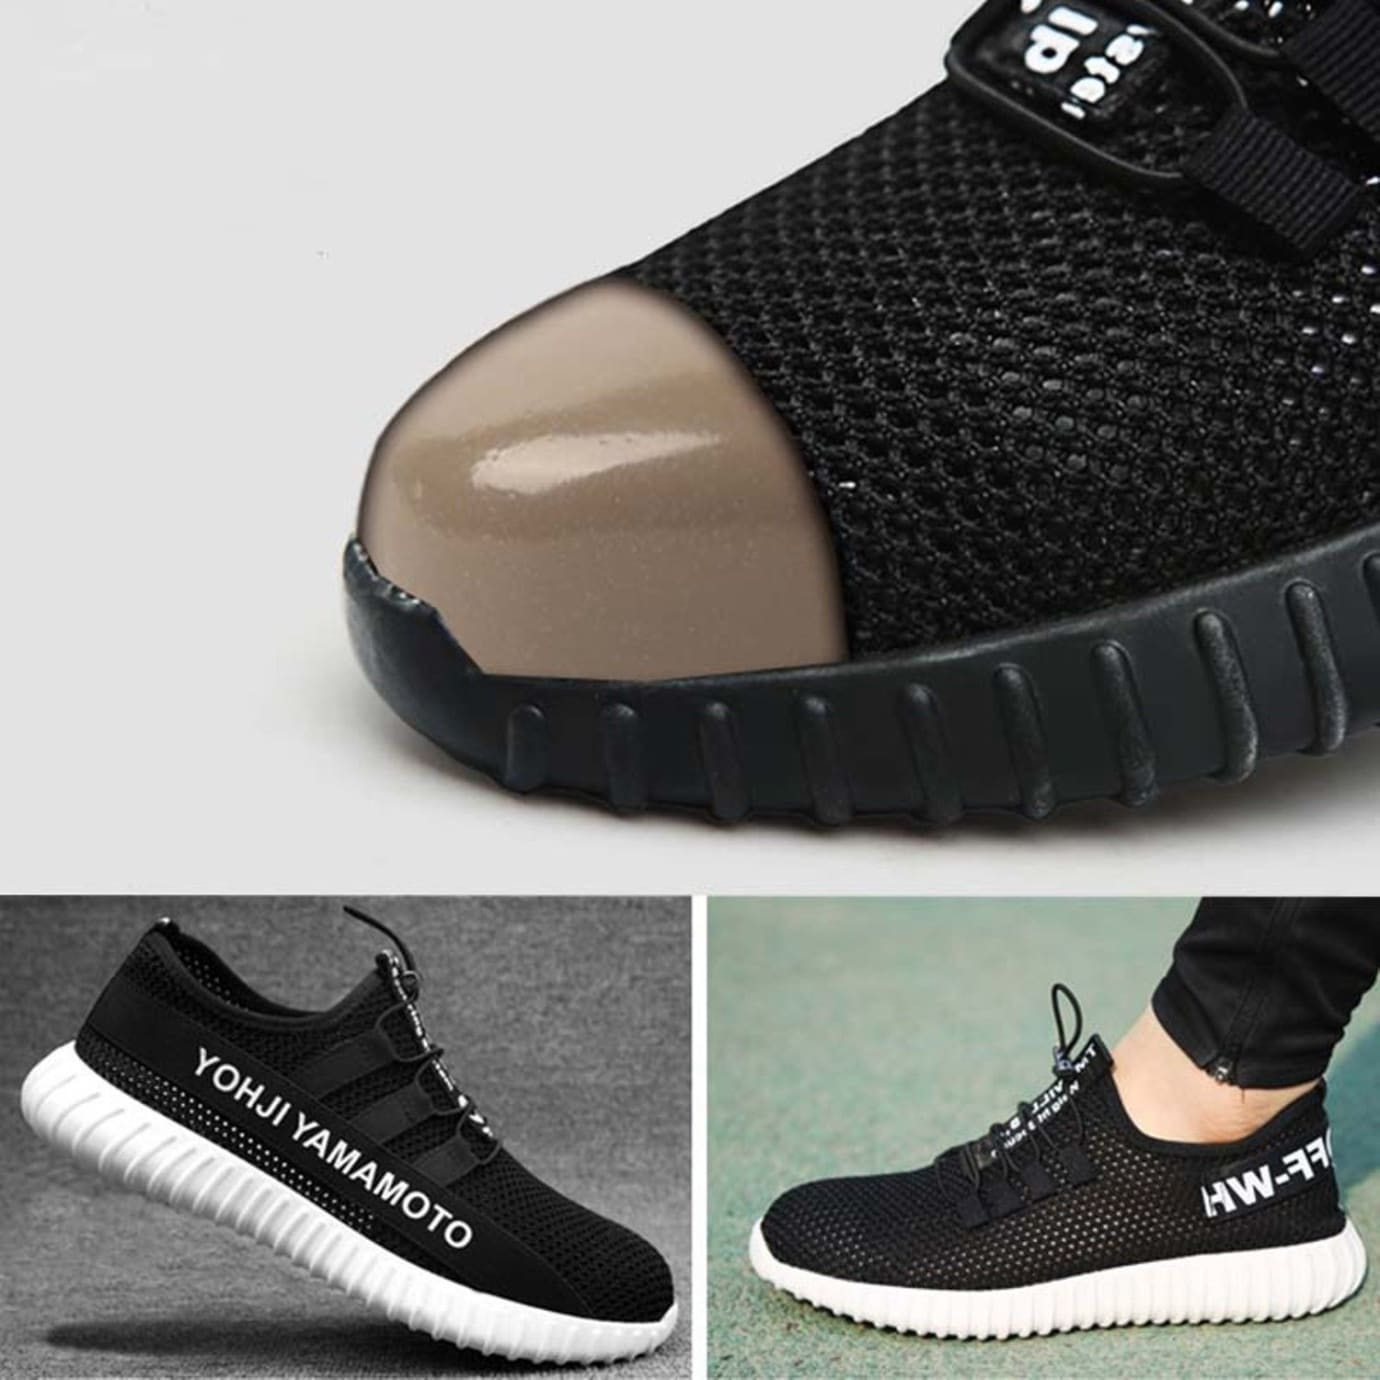 image via ebay fake off white x yeezy indestructible sneakers steel toe - fortnite yeezys